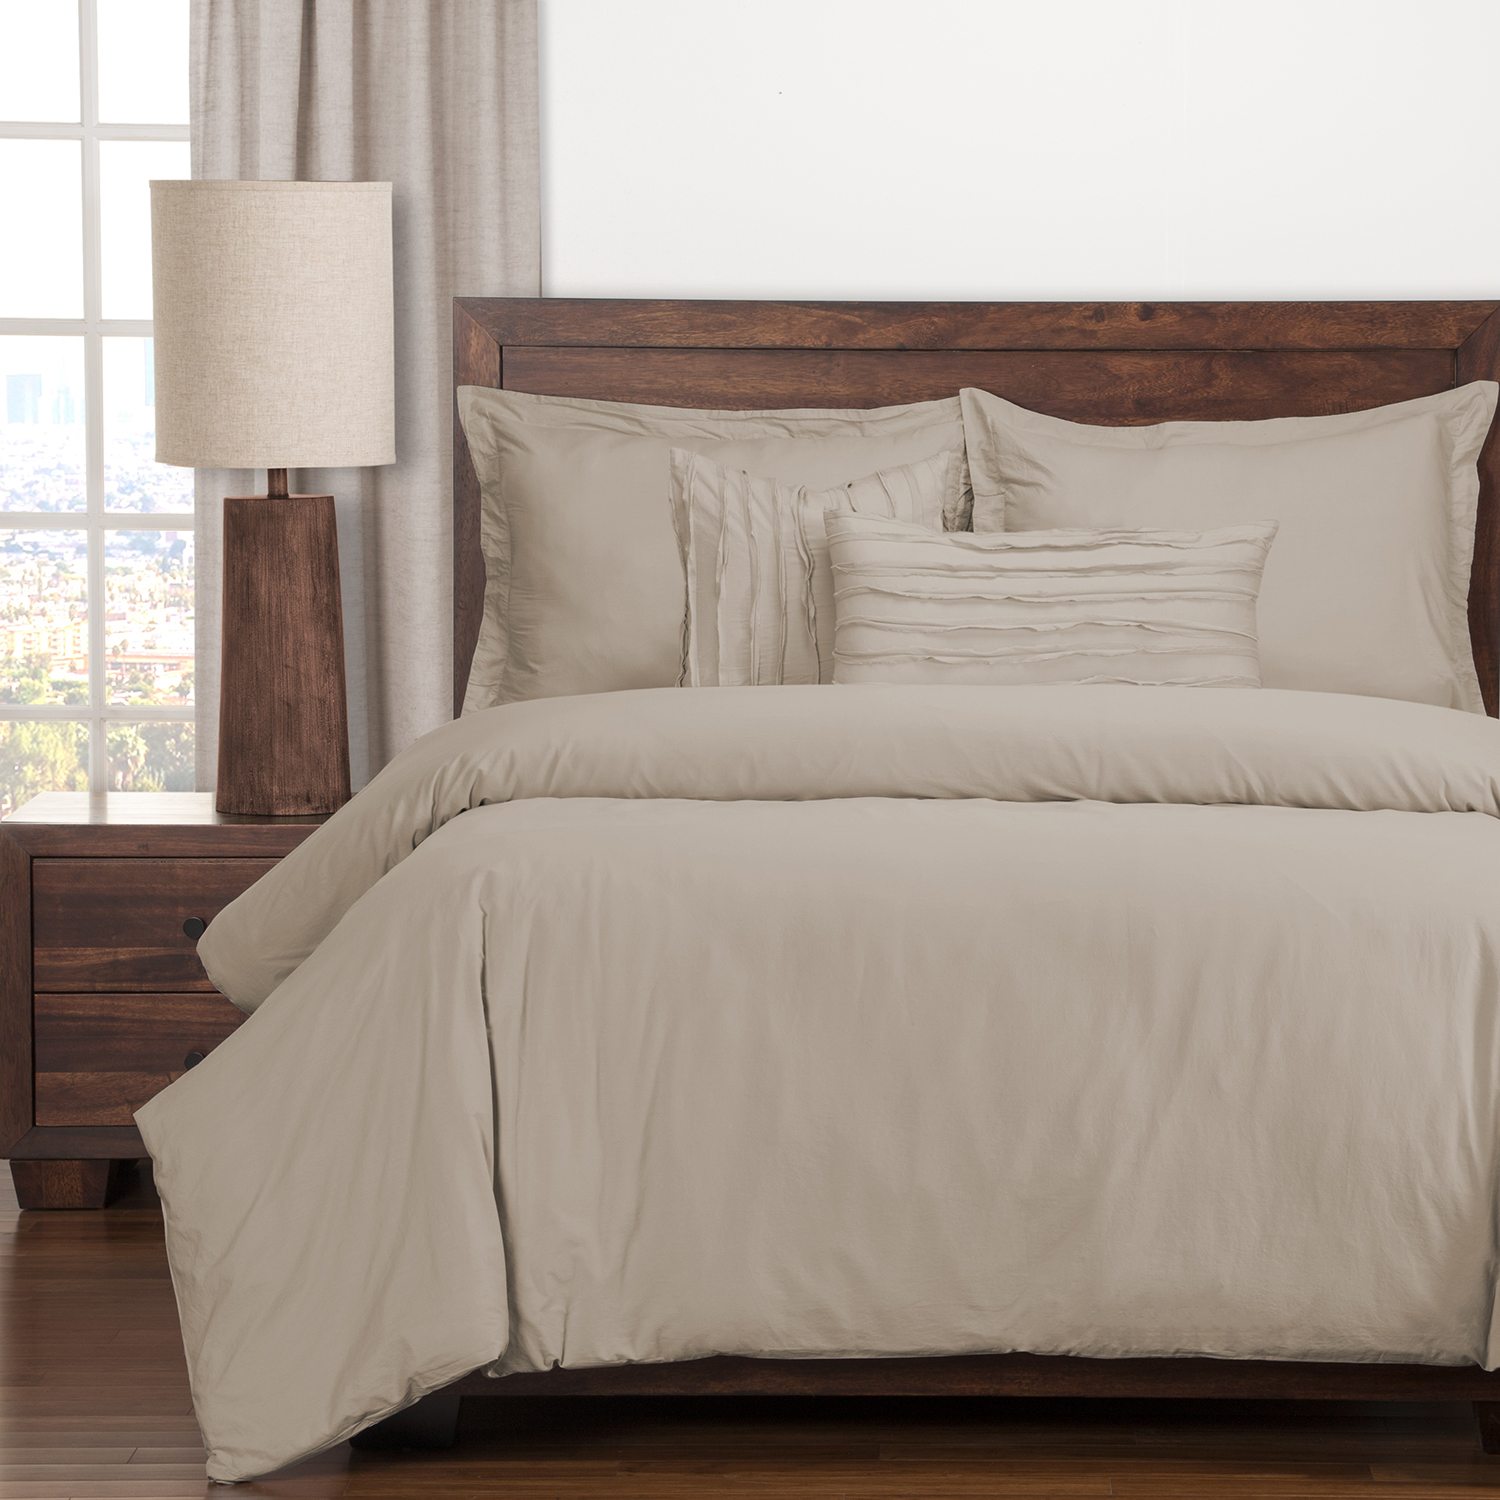 Classic Cotton Almond By SiS Covers